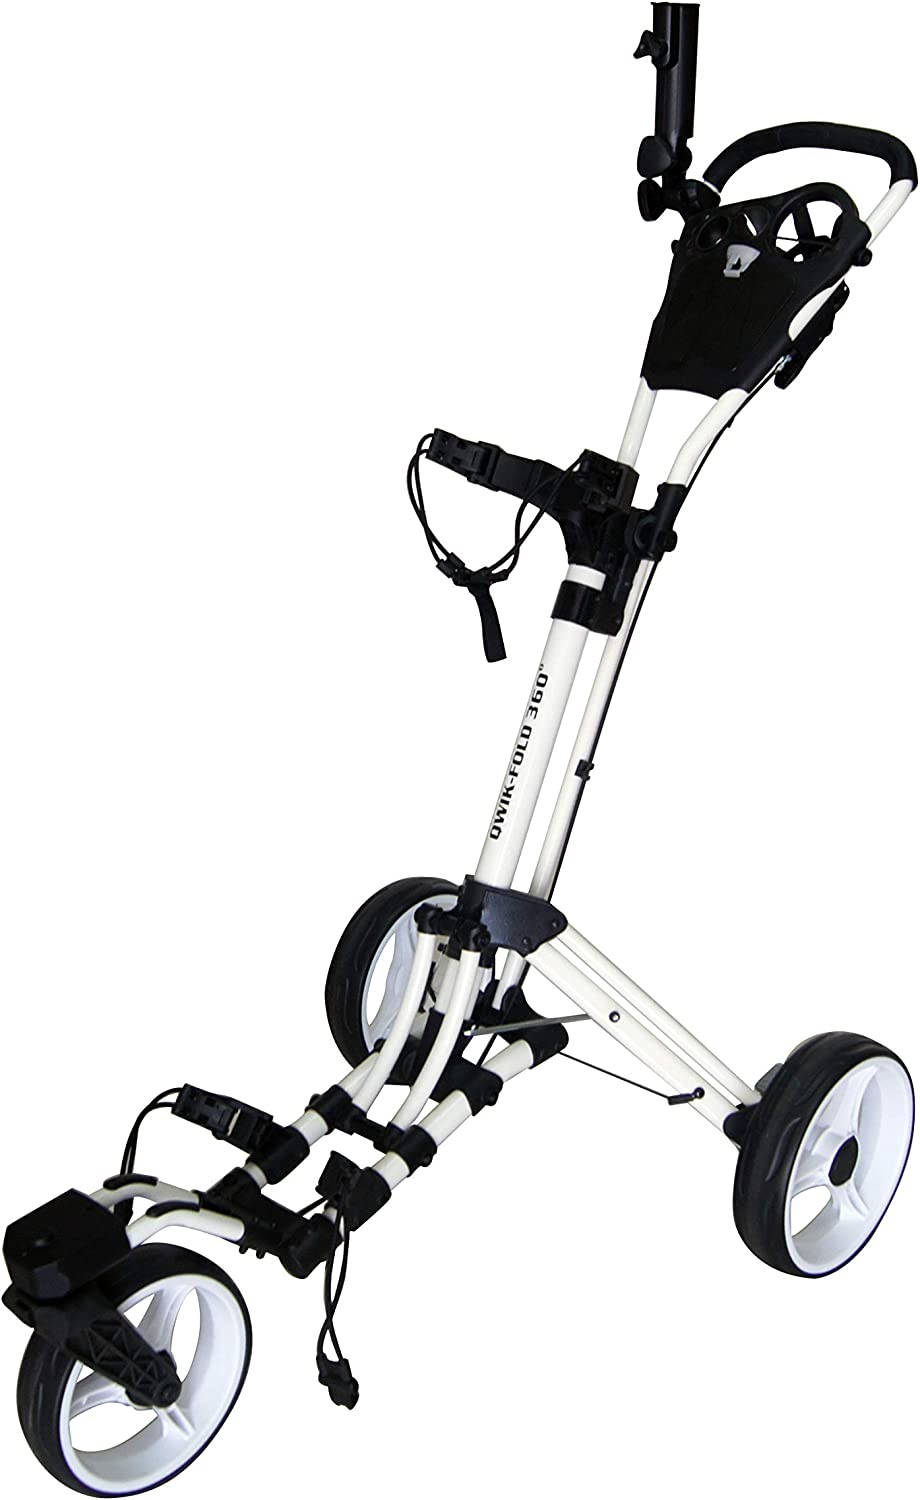 Qwik-Fold 360 Swivel 3 Wheel Push Pull Golf Cart with 360 Rotating Front Wheel, One Second to Open and Close Folding Cart, Collapsible Cart